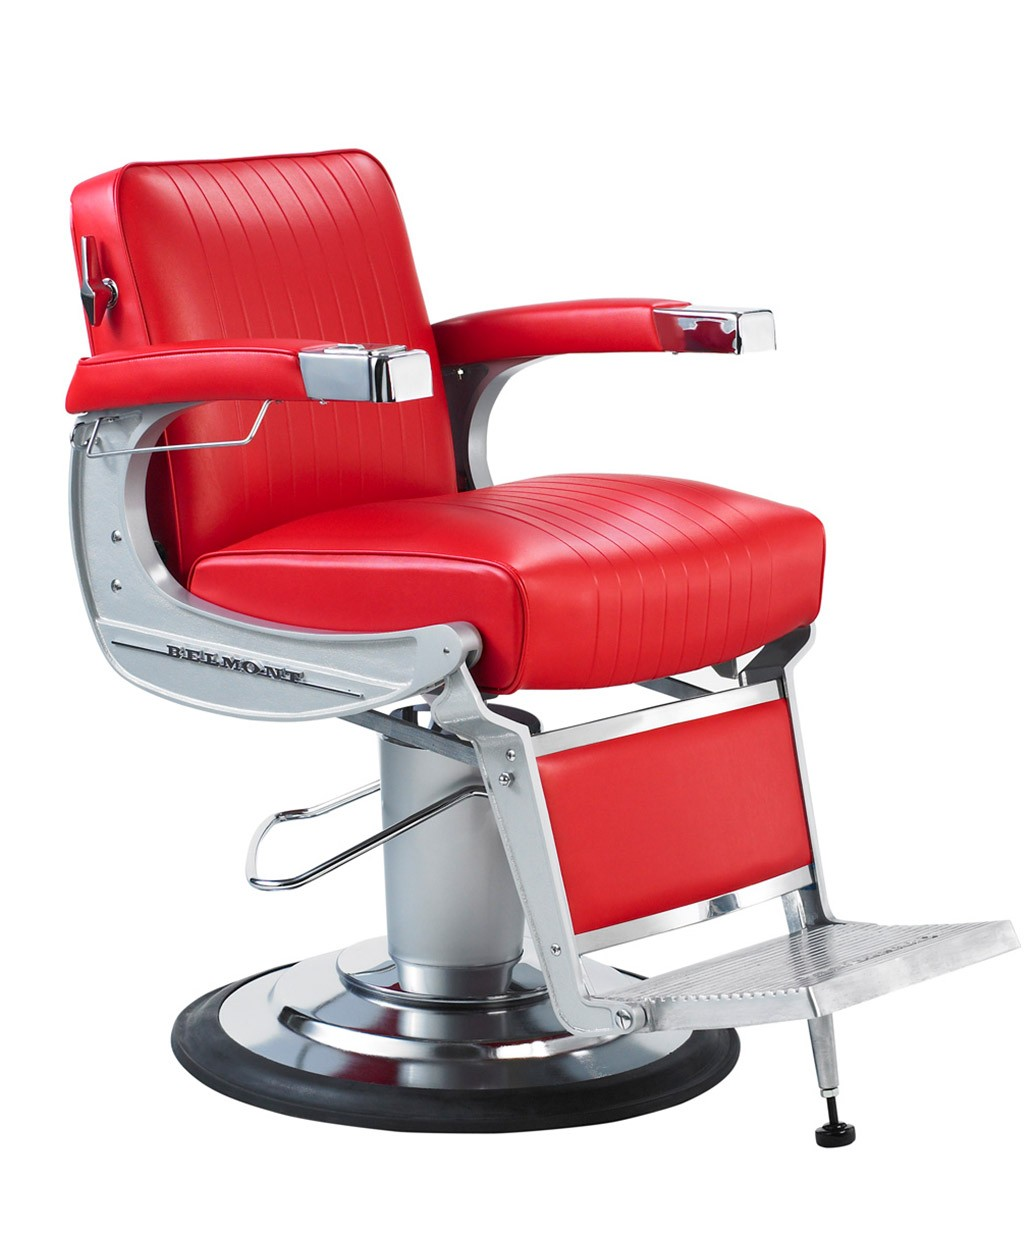 Belmont barber chairs -